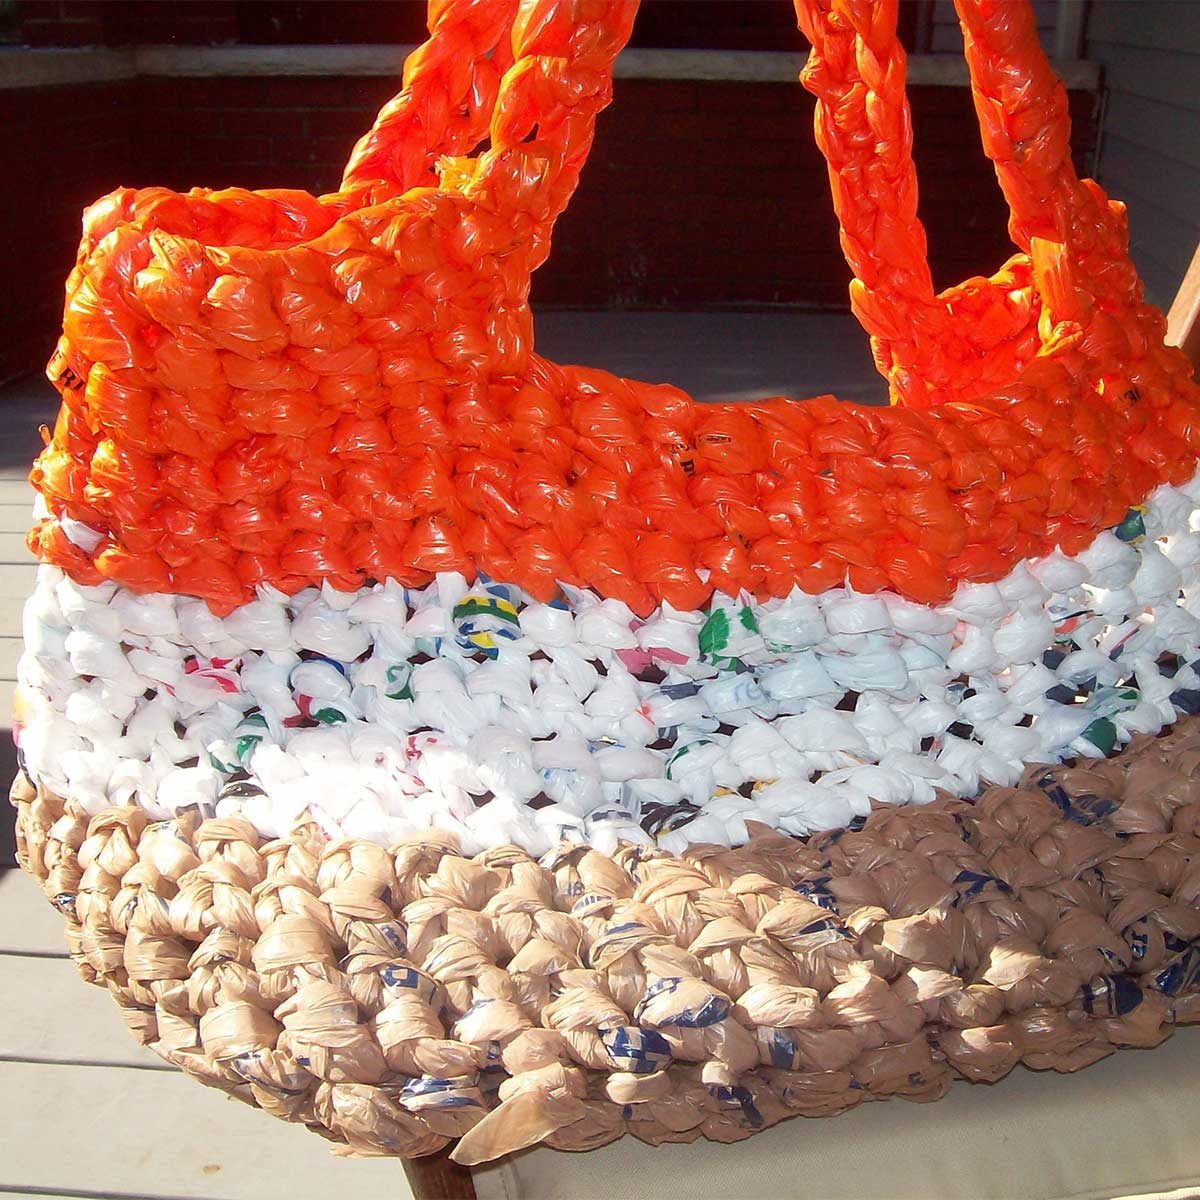 15 Brilliant Ways To Reuse Plastic Grocery Bags The Family Handyman